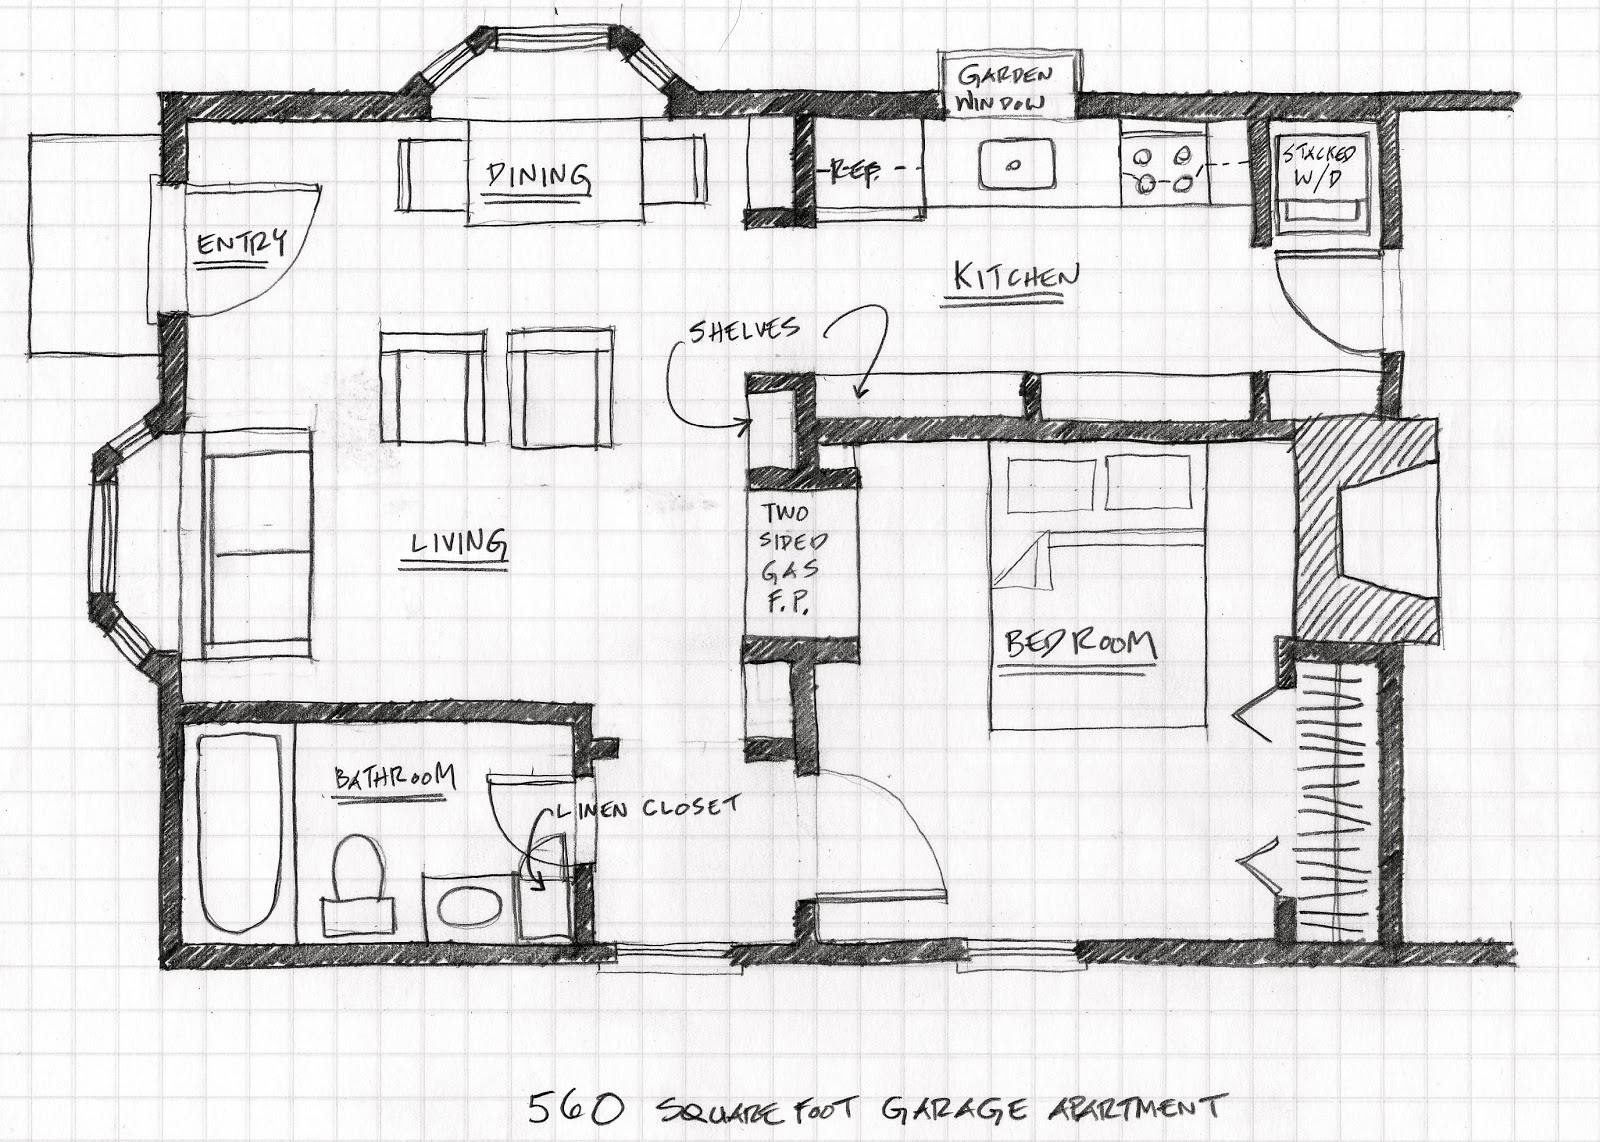 Garage Apartment Small Scale Homes Floor Plans For Garage To Apartment Conversion